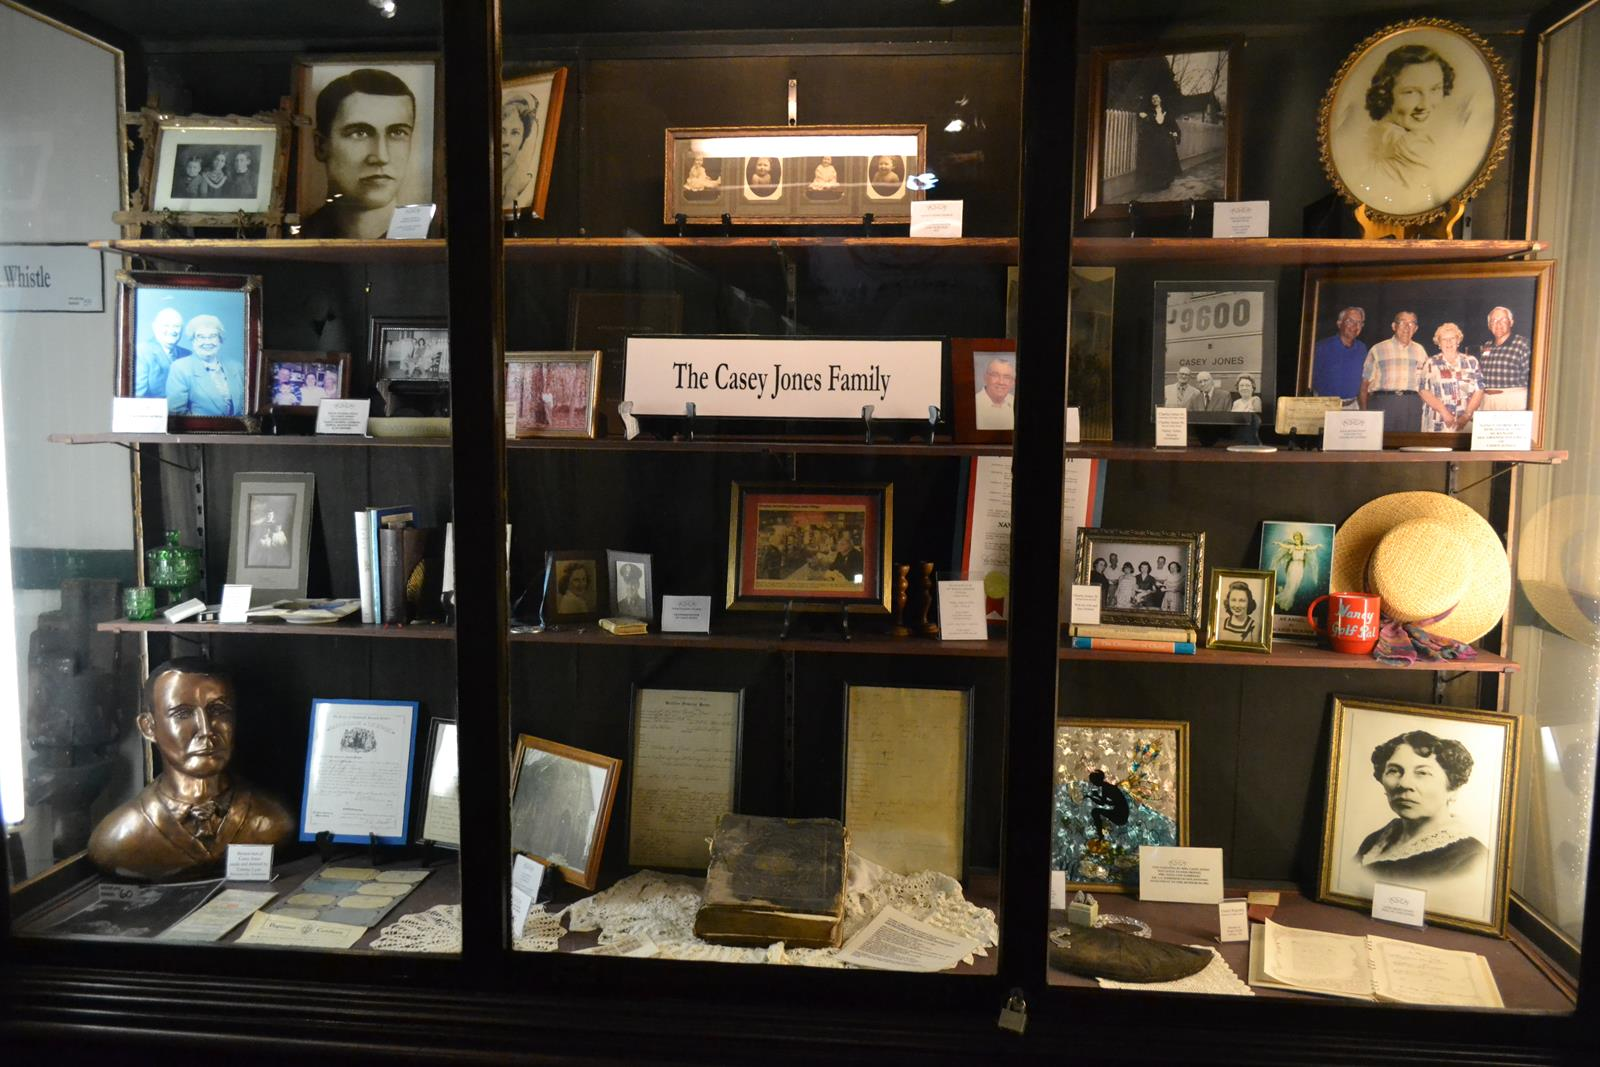 Many artifacts from Casey Jones' family are displayed at the Casey Jones Museum in Jackson, Tennessee.